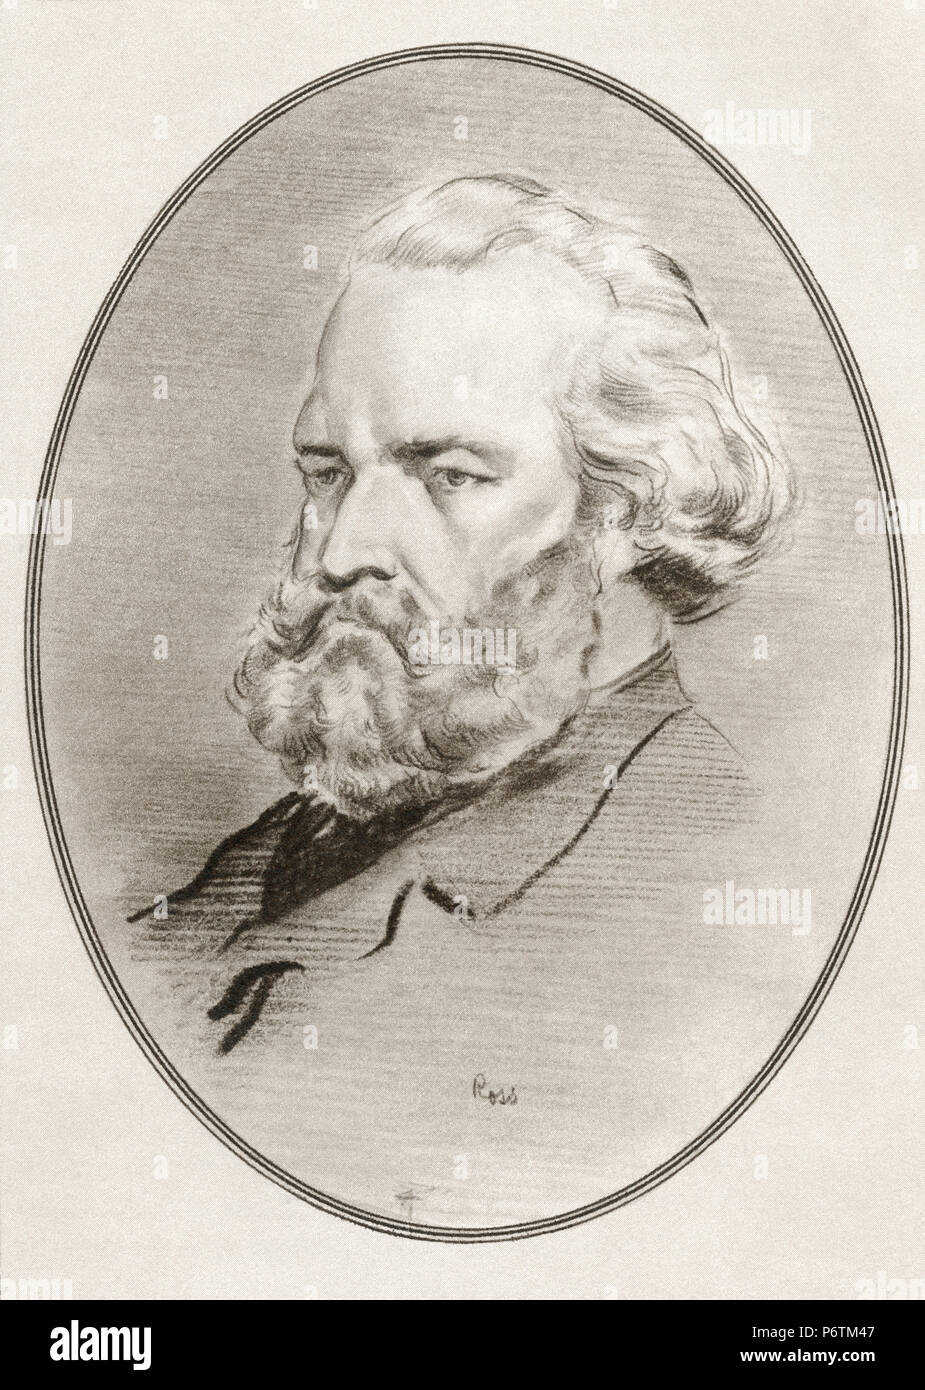 Jean-François Millet, 1814 – 1875. French painter and one of the founders of the Barbizon school.  Illustration by Gordon Ross, American artist and illustrator (1873-1946), from Living Biographies of Great Painters. - Stock Image